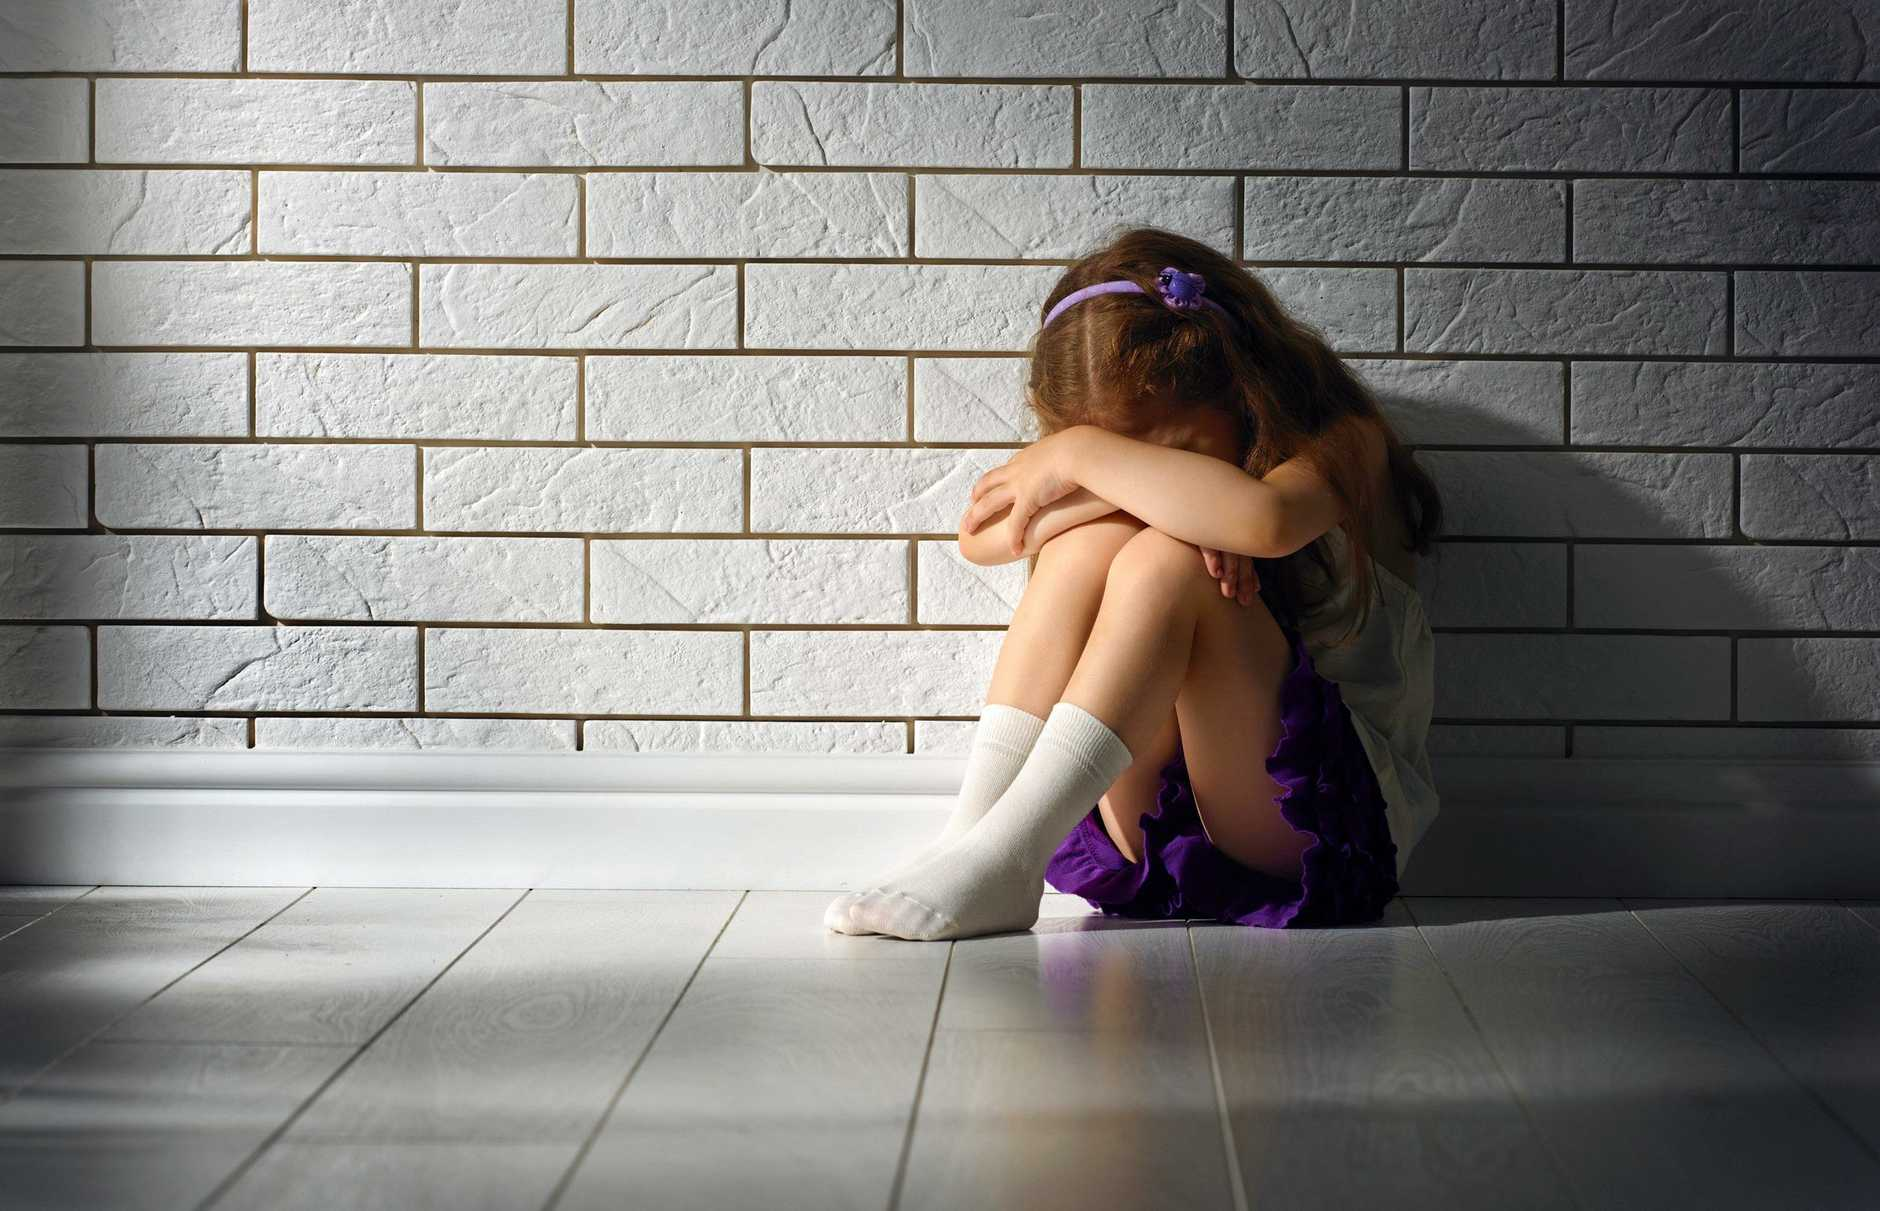 CHILD ABUSE: 300 cases of child abuse in the Mackay region have not been tended to.